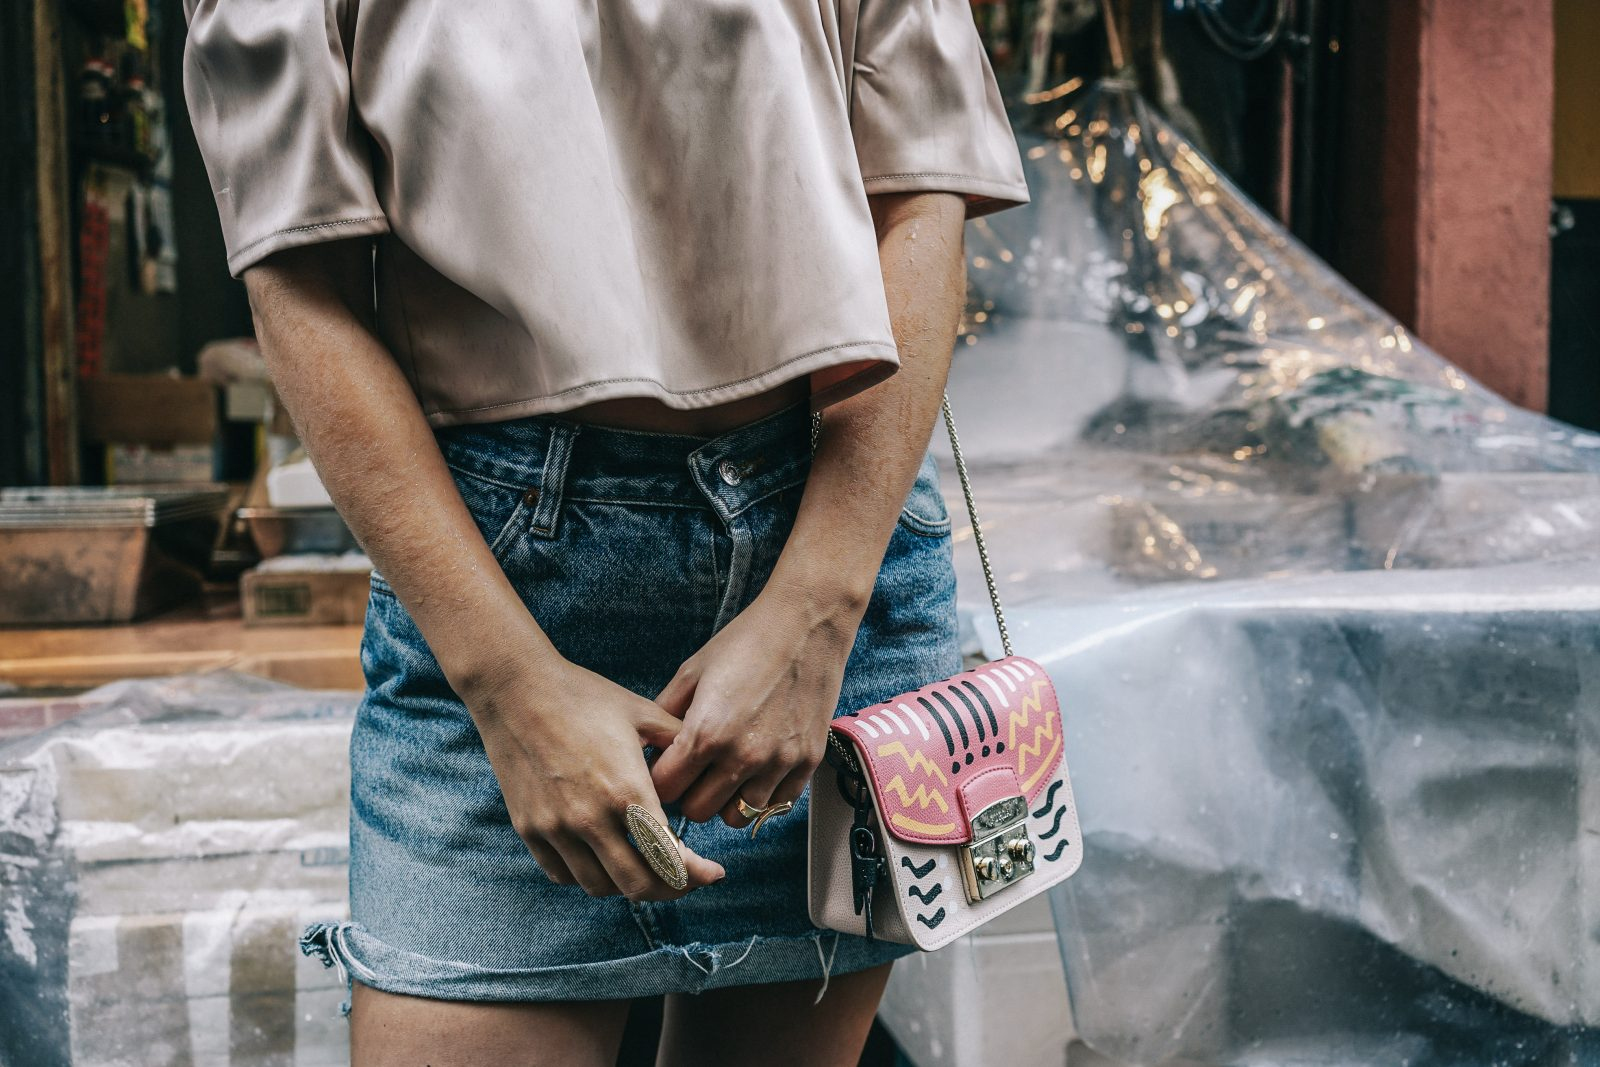 Tokyo_Travel_Guide-Fish_Market-Harajuku-Levis_Denim_Skirt-Off_The_Shoulders_Top-YSL_Sneakers-Outfit-Collage_Vintage-Street_Style-86